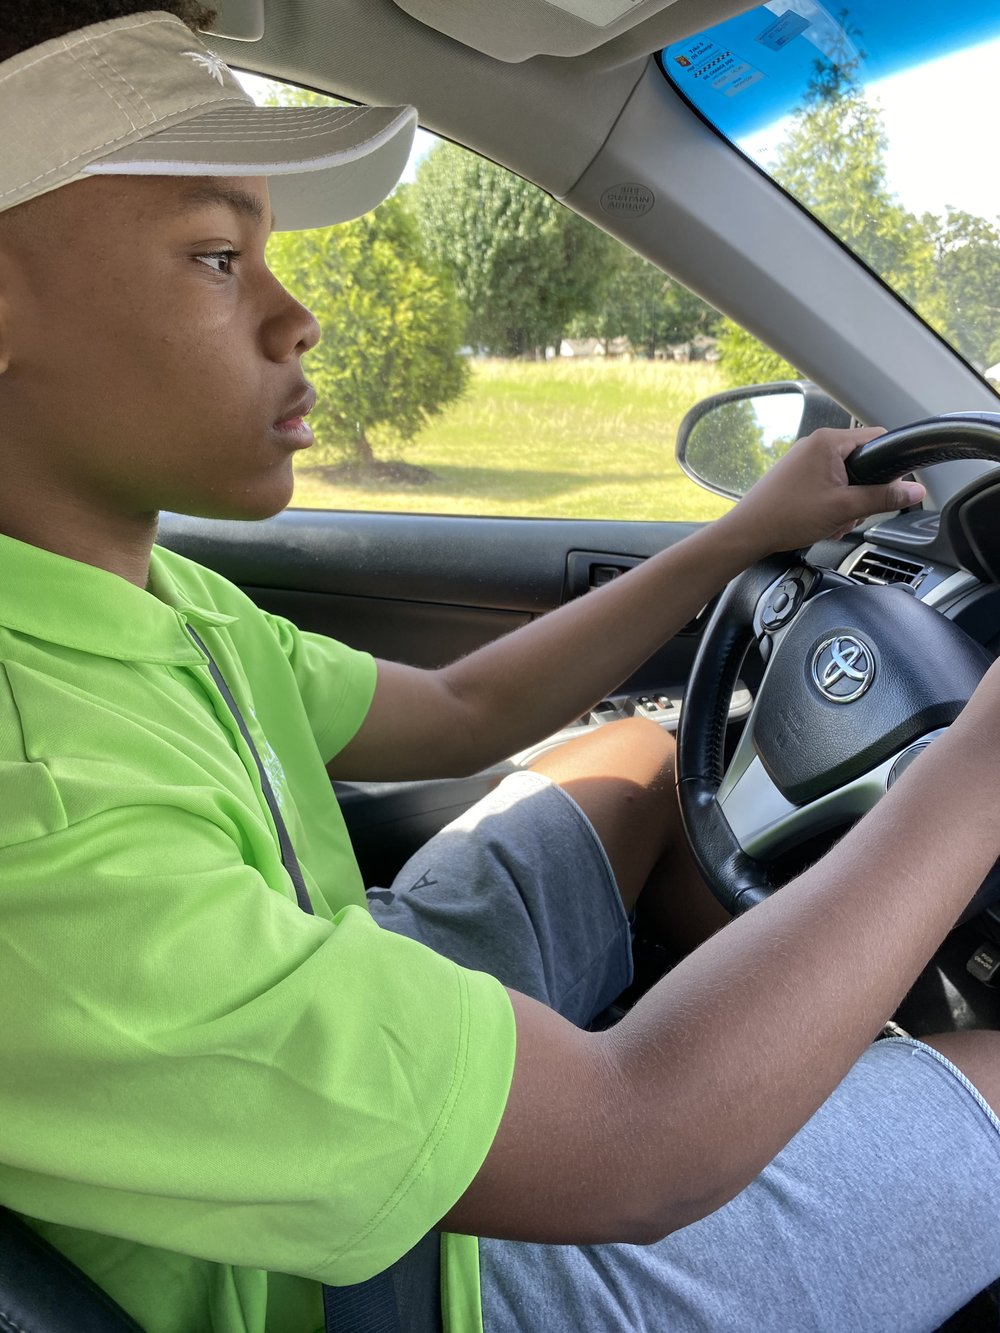 Take the wheel: Arkansas teens are still learning to drive